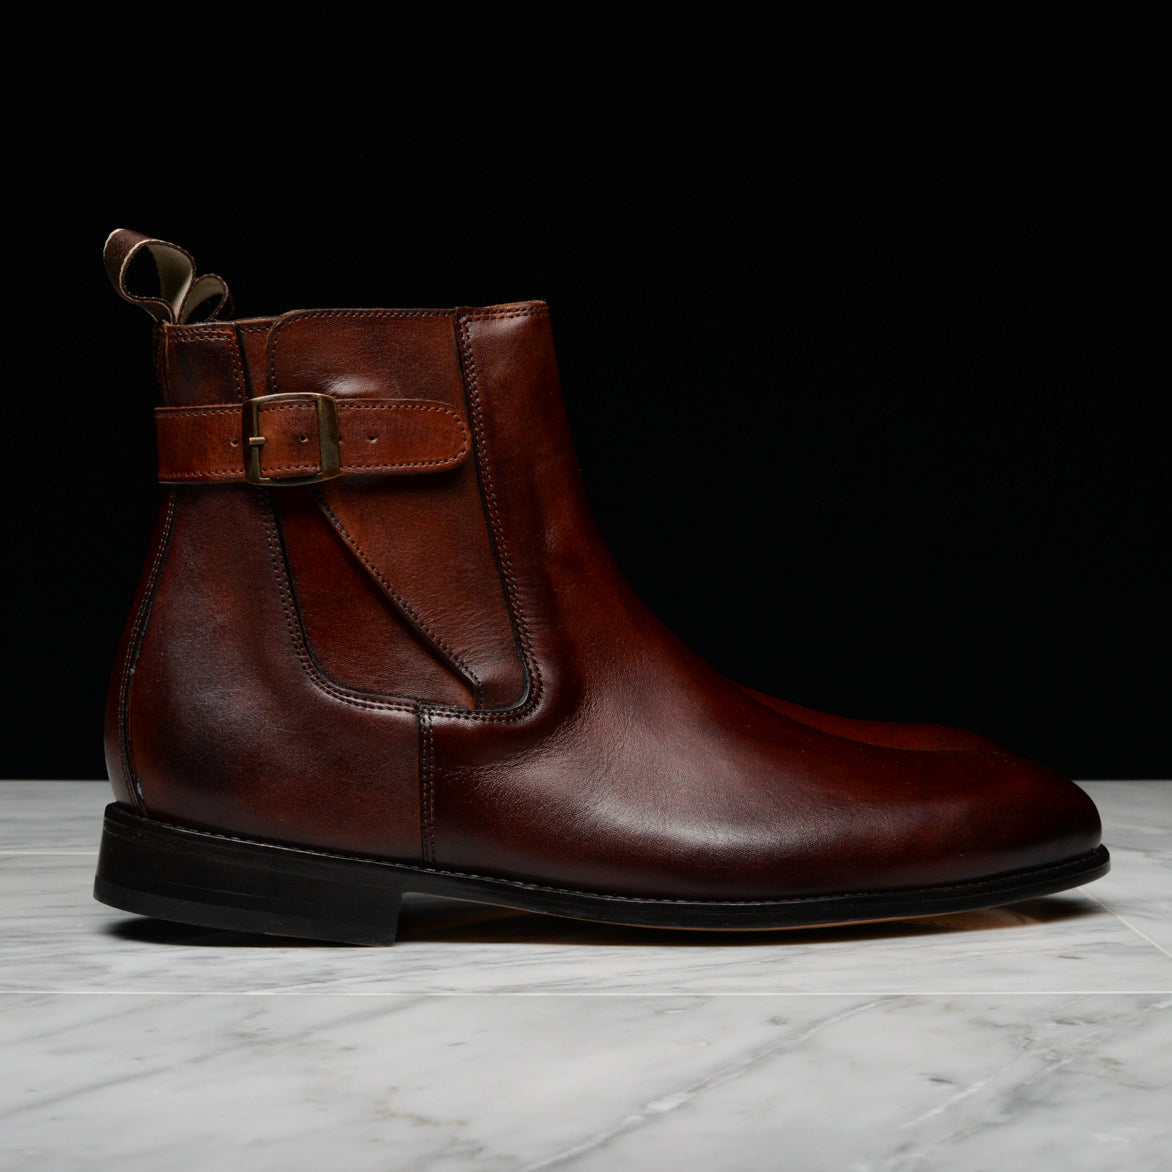 KENTON JODHPUR - DARK TAN